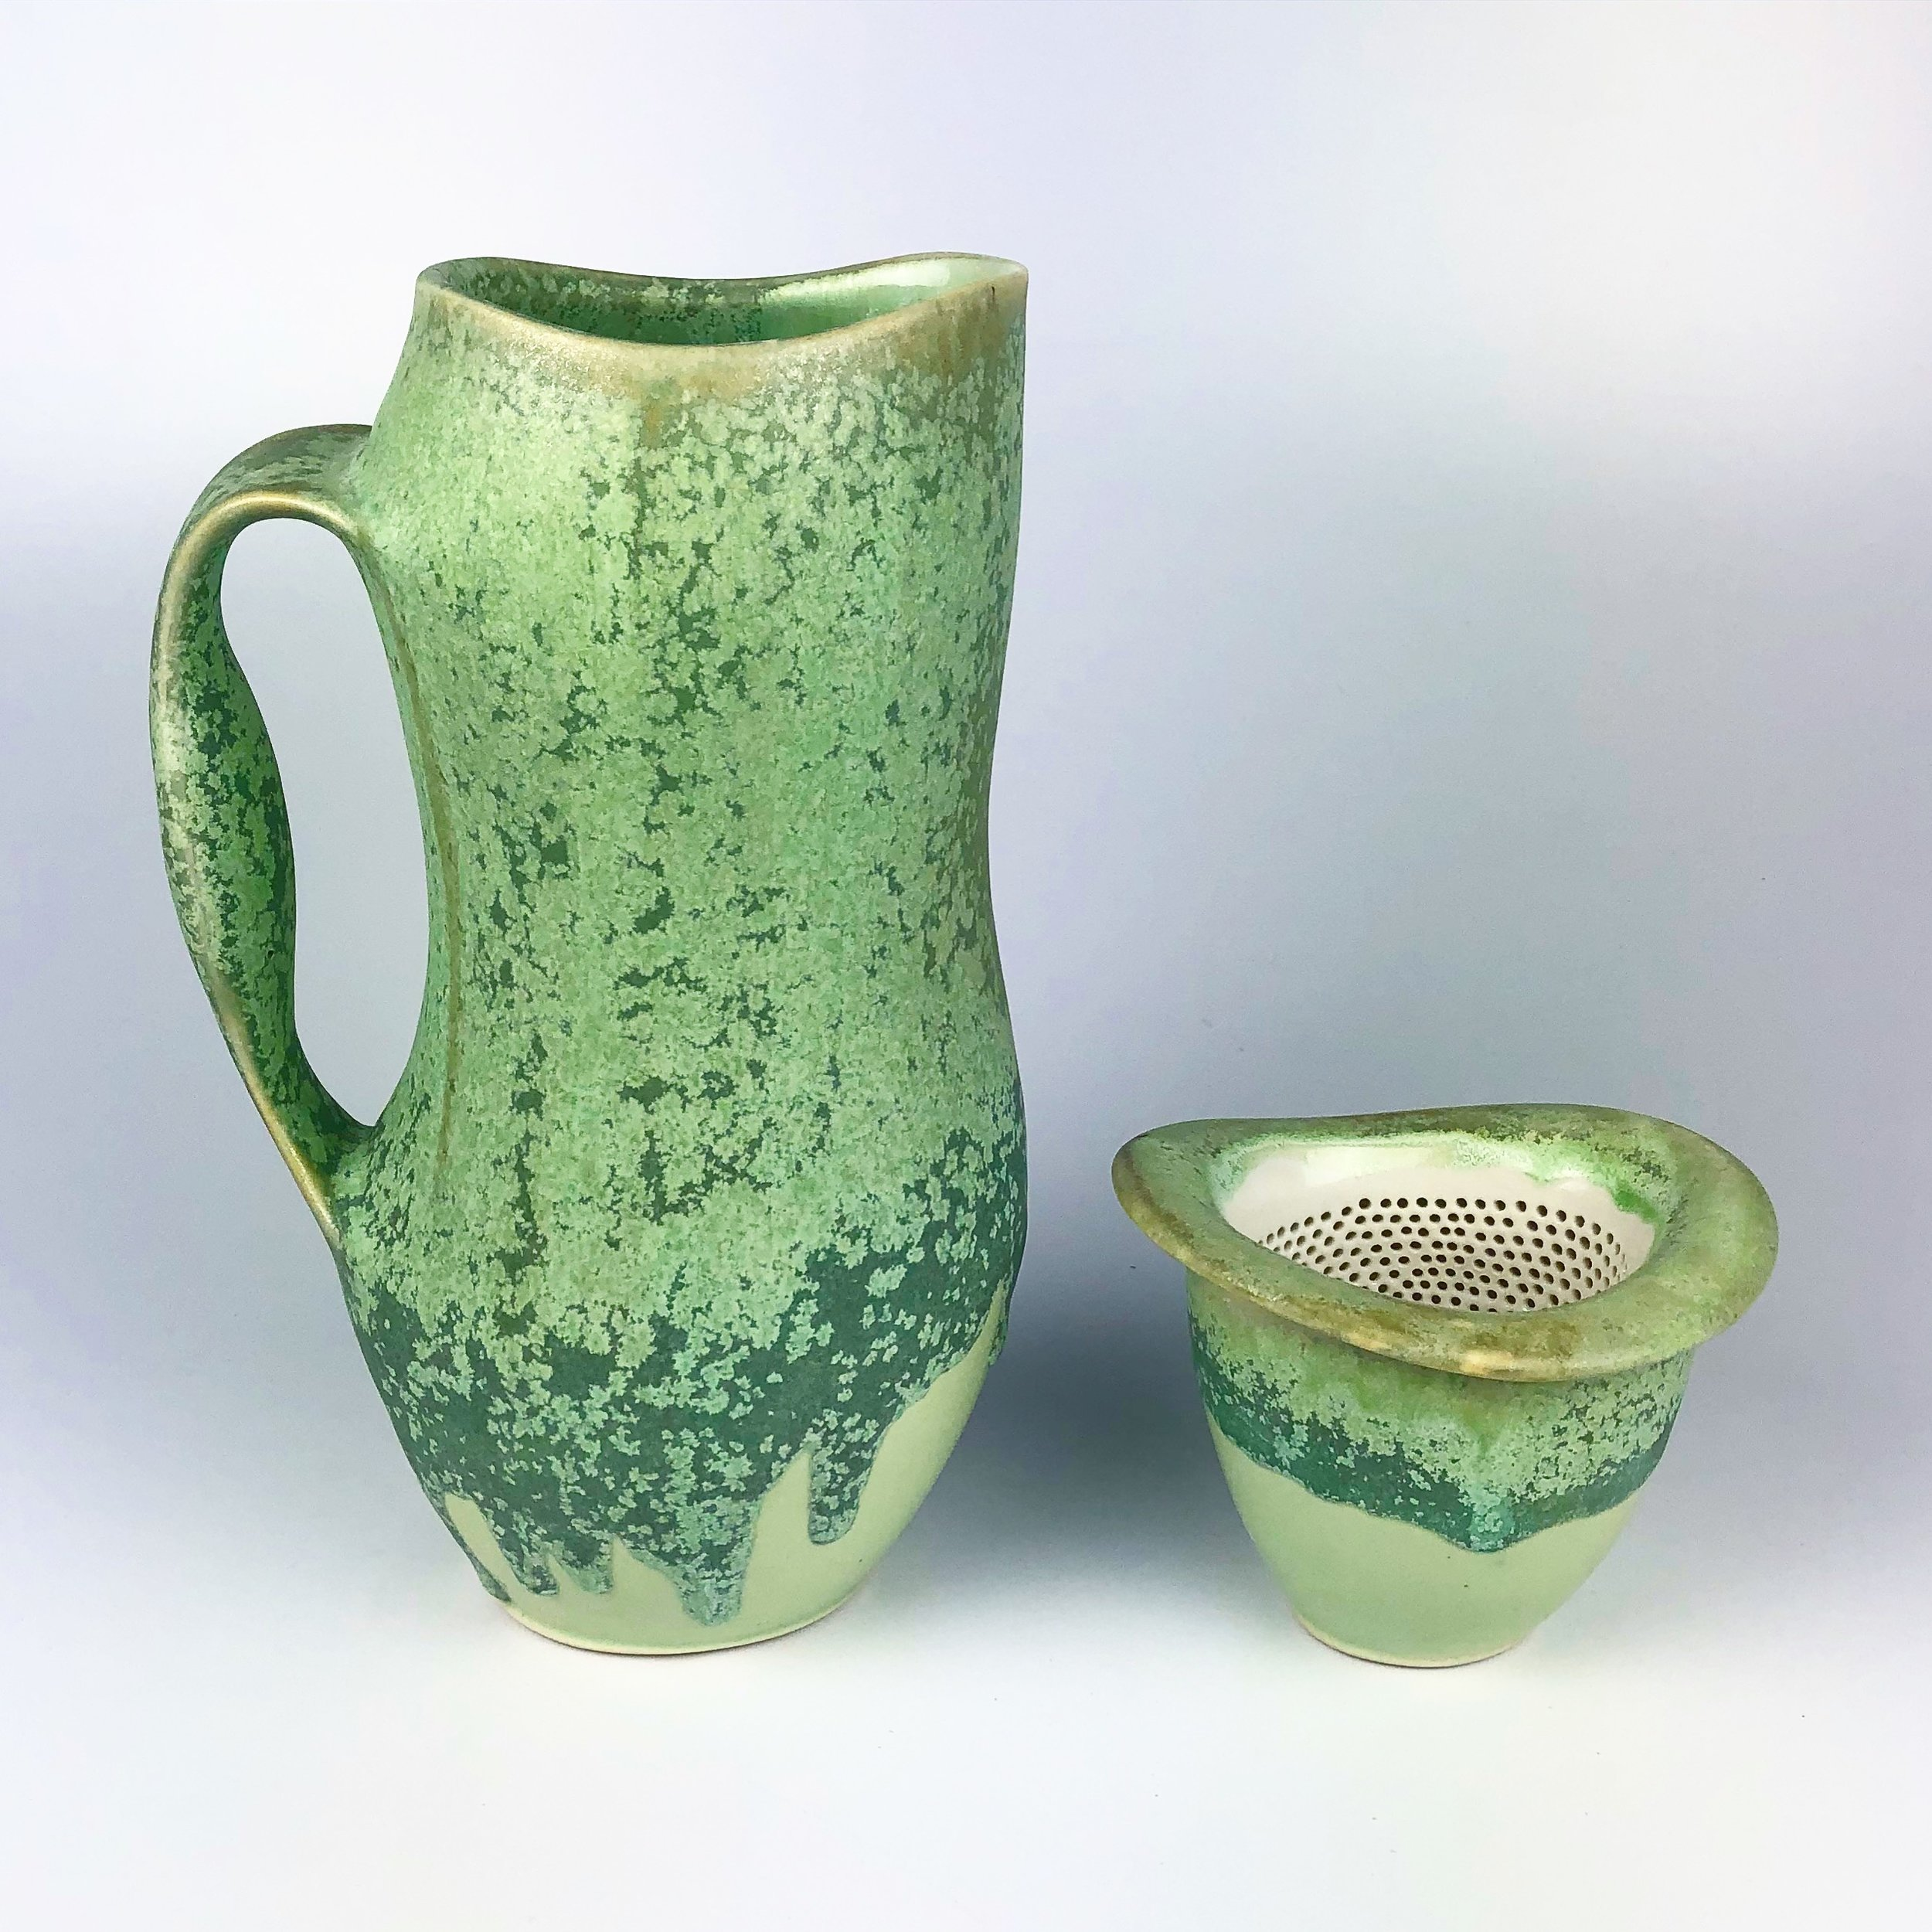 pitcher with tea infuser and stand